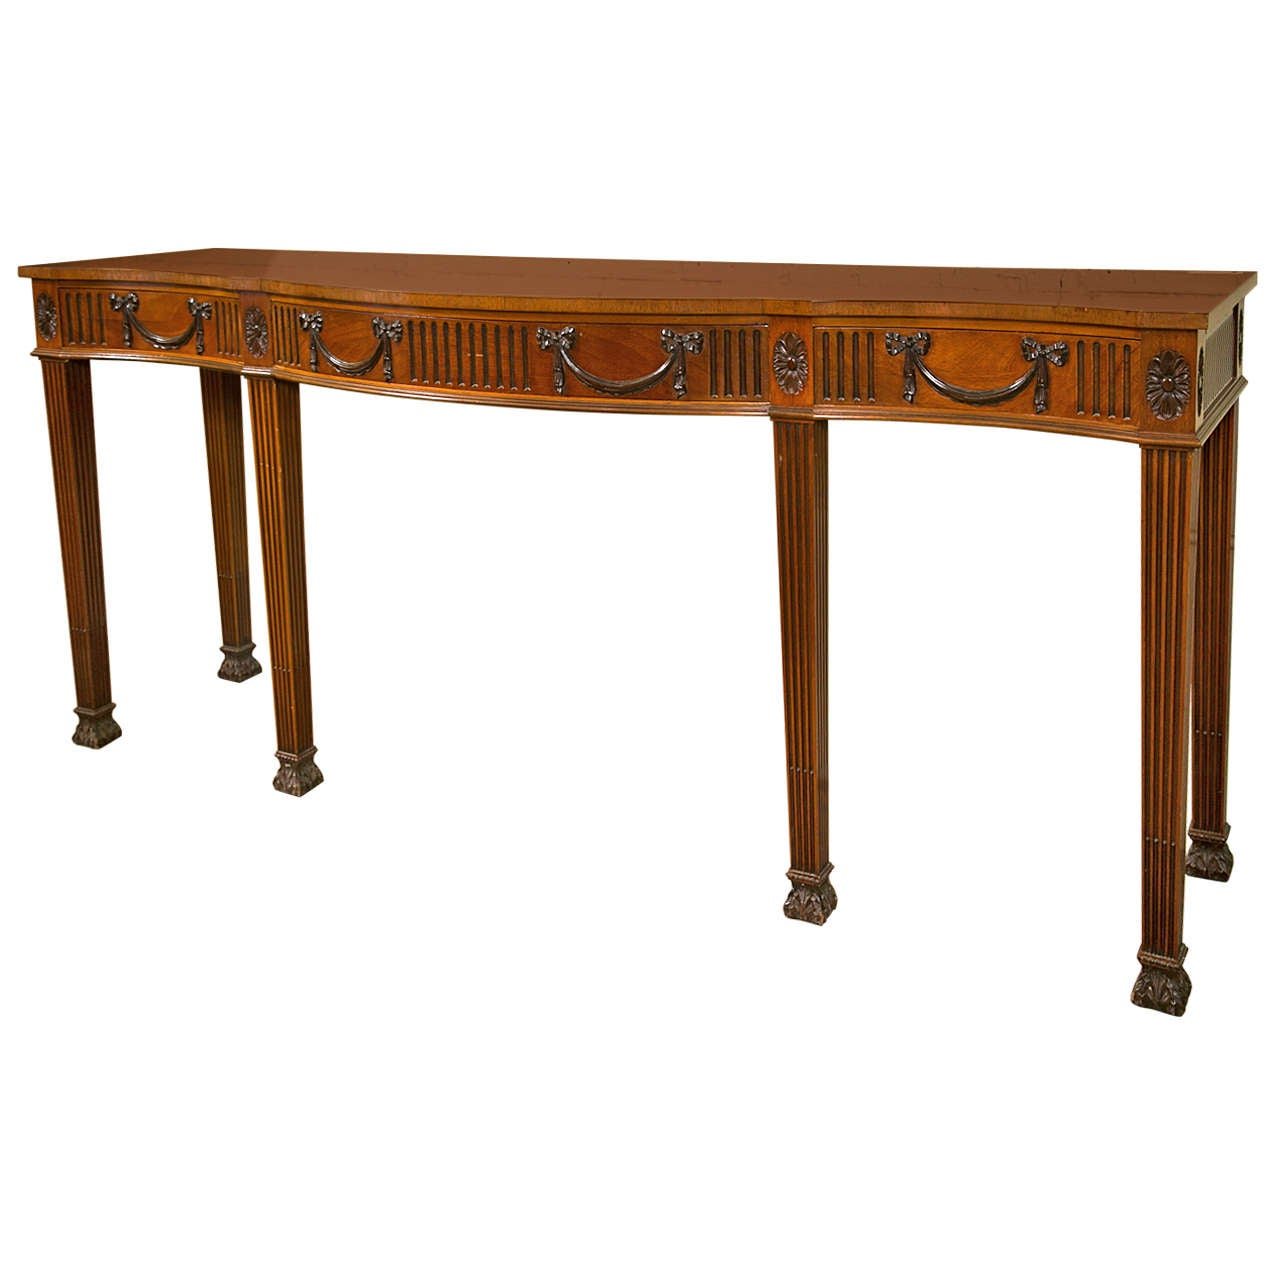 schmieg and kotzian georgian style mahogany console or serving